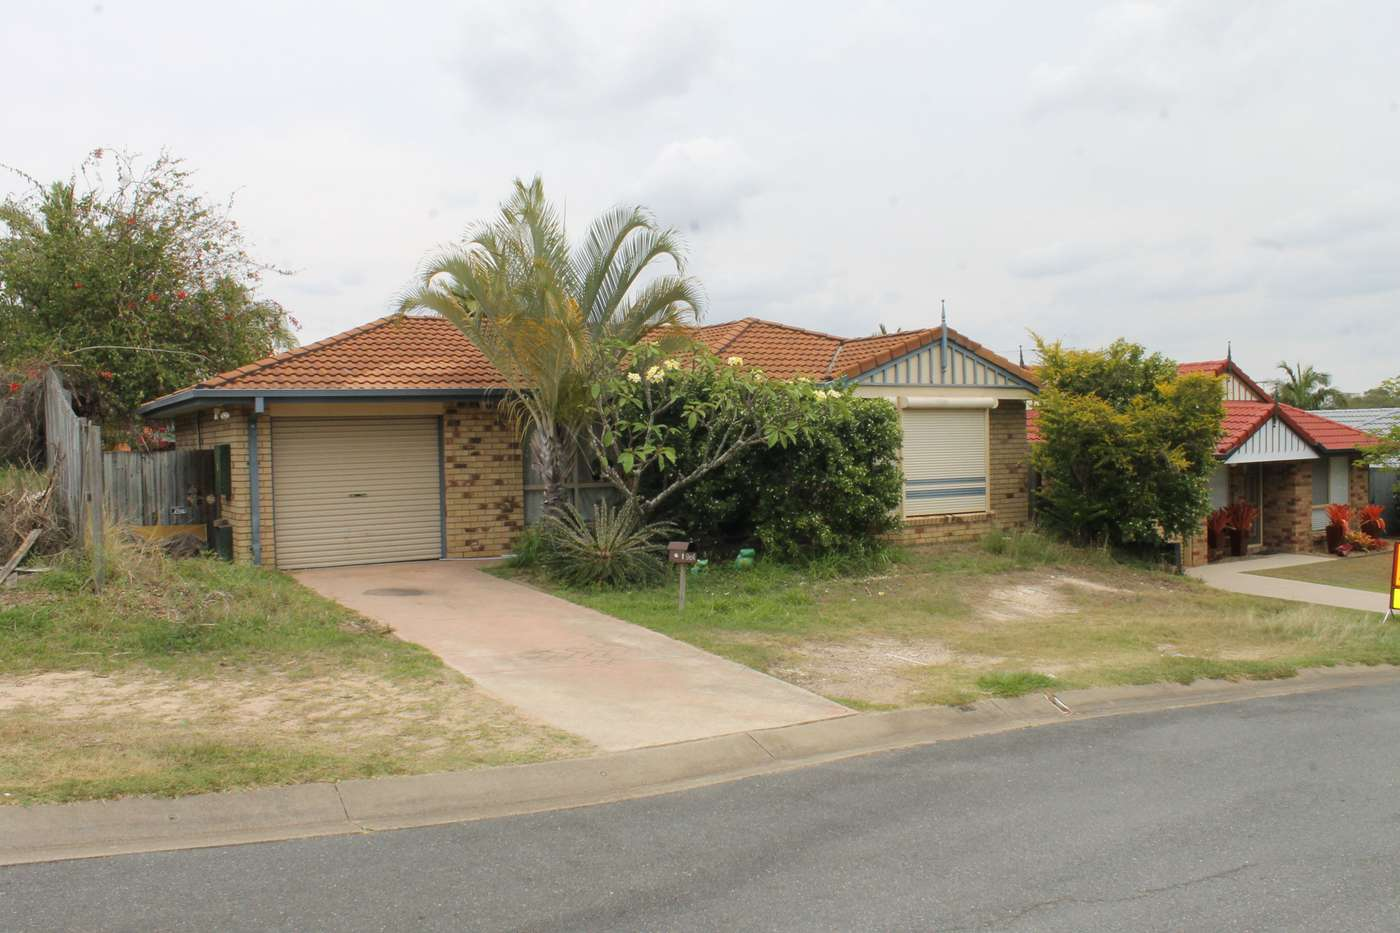 Main view of Homely house listing, 94 Torquay Crescent, Tingalpa, QLD 4173